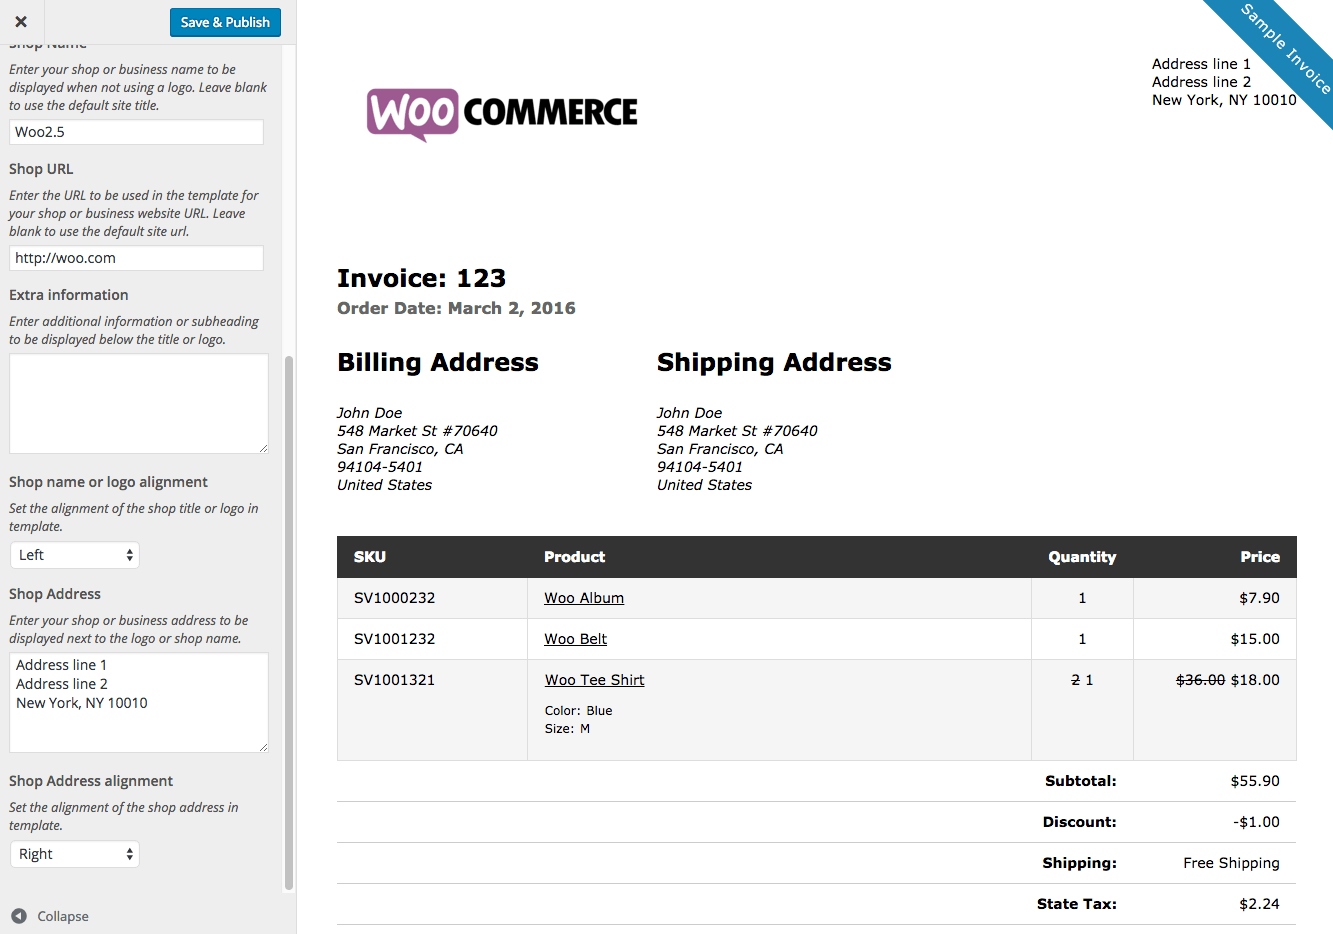 Ultrablogus  Surprising Woocommerce Print Invoices Amp Packing Lists  Woocommerce Docs With Exciting Woocommerce Print Invoices  Packing Lists Customizer With Agreeable Copy Of Personal Property Tax Receipt Missouri Also Printable Cash Receipts In Addition Store Receipts Online And Atm Receipt Generator As Well As Enterprise Rental Receipts Additionally St Louis County Real Estate Tax Receipt From Docswoocommercecom With Ultrablogus  Exciting Woocommerce Print Invoices Amp Packing Lists  Woocommerce Docs With Agreeable Woocommerce Print Invoices  Packing Lists Customizer And Surprising Copy Of Personal Property Tax Receipt Missouri Also Printable Cash Receipts In Addition Store Receipts Online From Docswoocommercecom